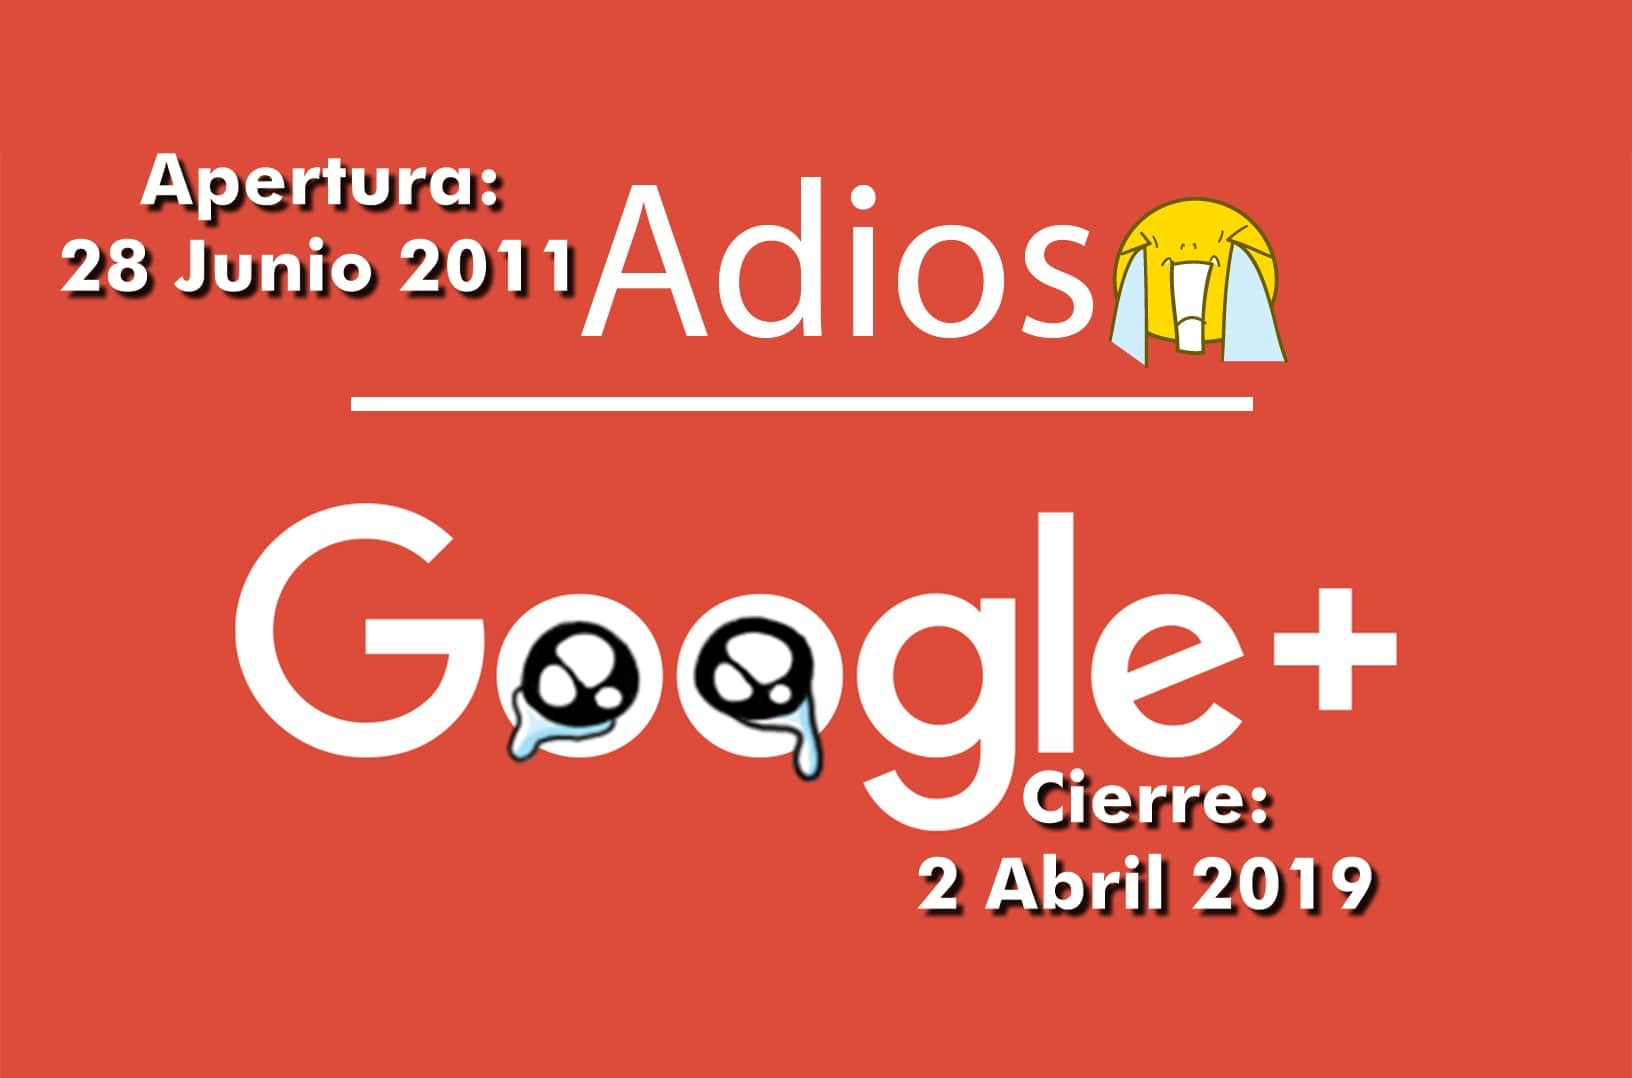 Google-plus-desaparecerá